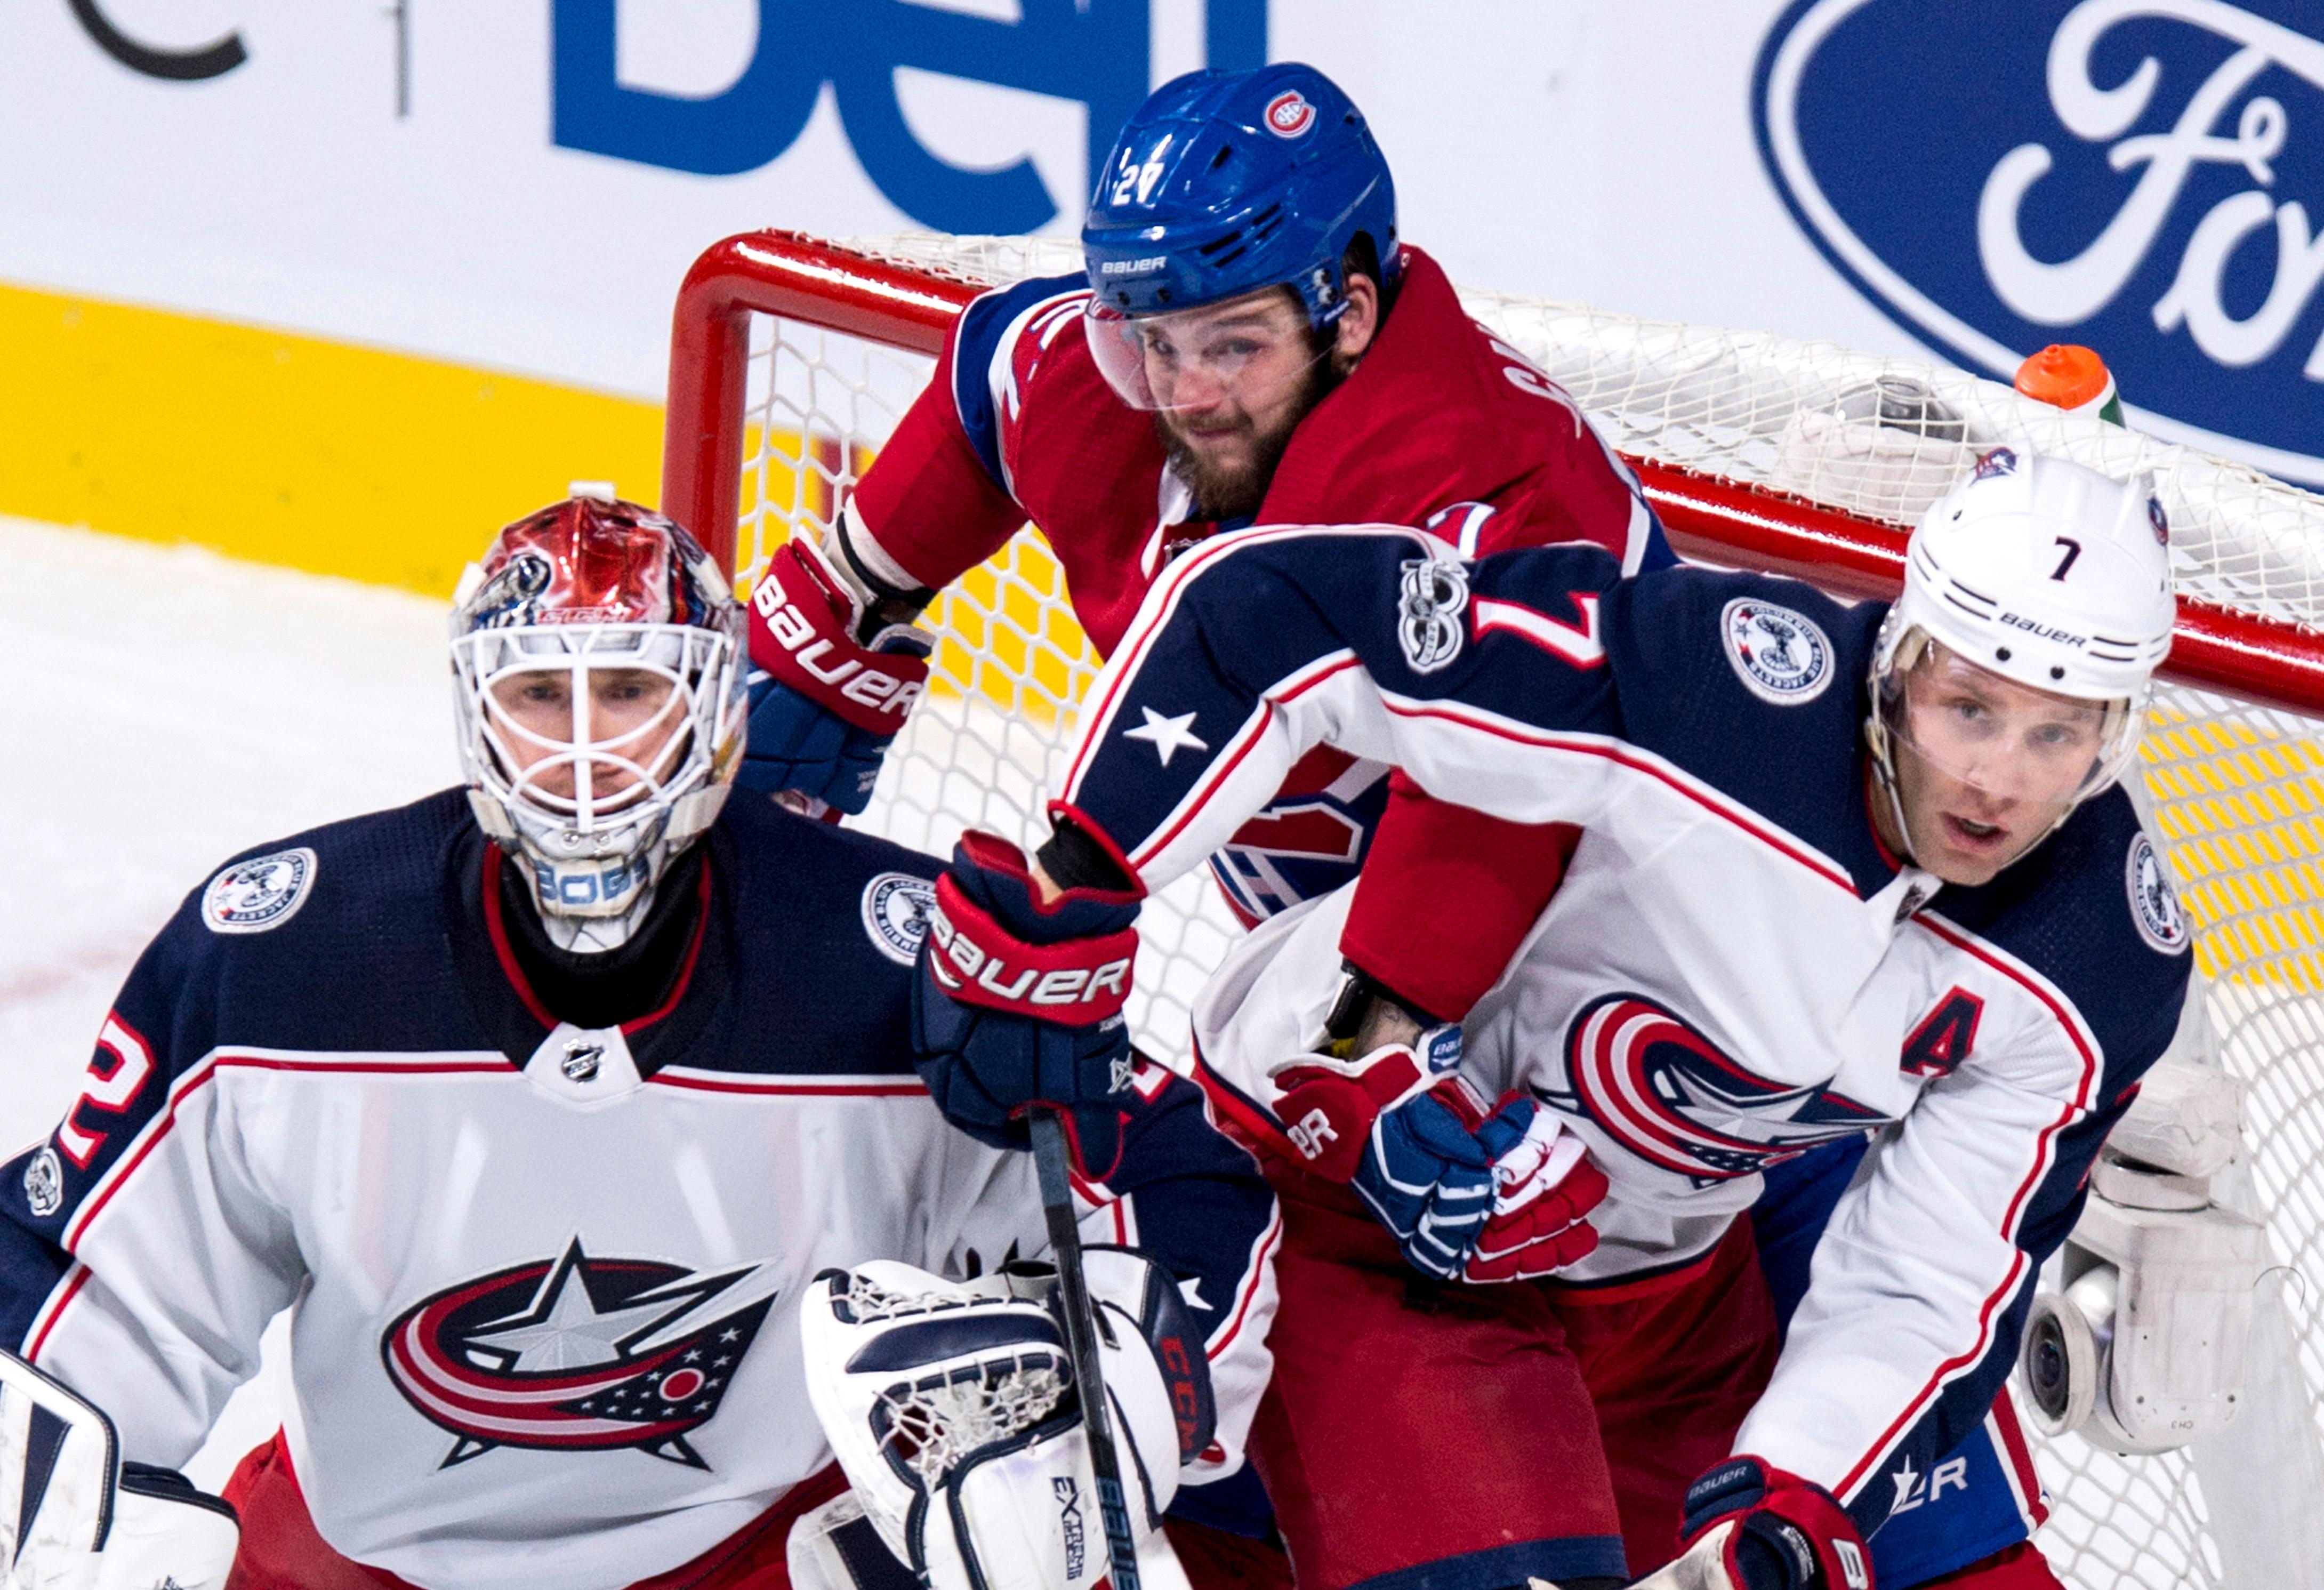 Montreal Canadiens' Alex Galchenyuk gets caught behind Columbus Blue Jackets goalie Sergei Bobrovsky and defenseman Jack Johnson during the second period of an NHL hockey game Tuesday, Nov. 14, 2017, in Montreal. (Paul Chiasson/The Canadian Press via AP)